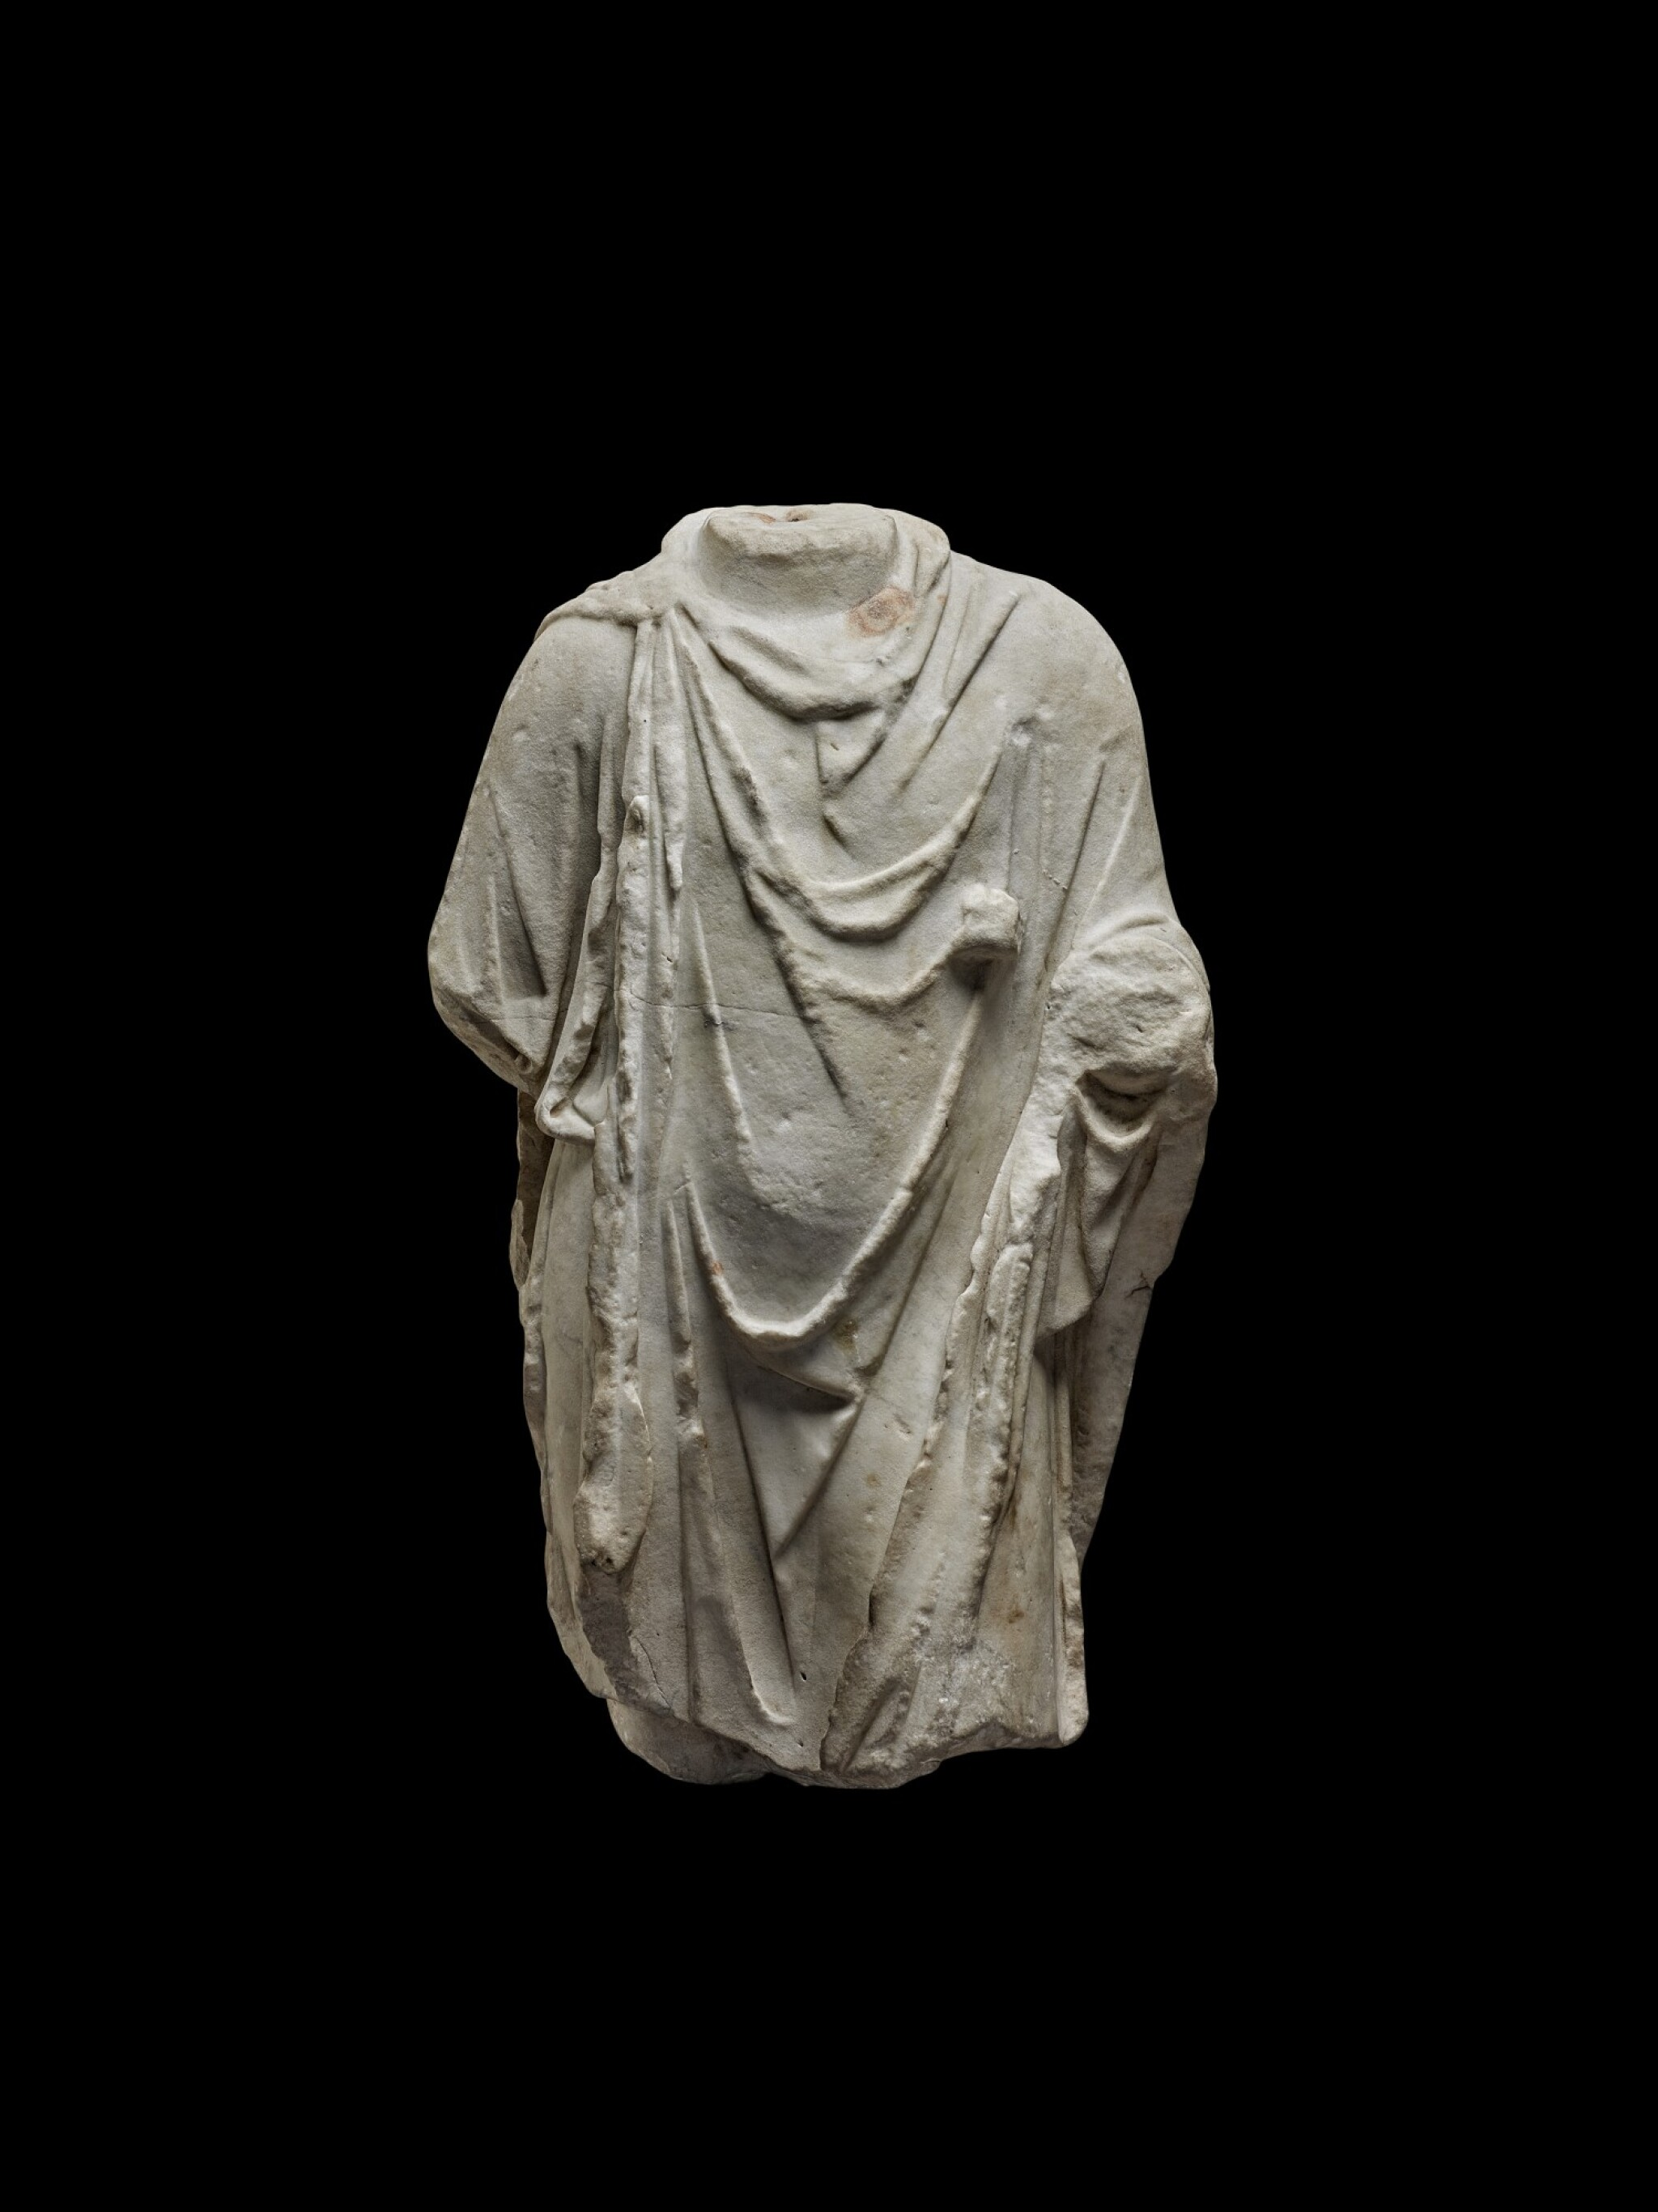 View 1 of Lot 77. A Roman Marble Torso of Hermanubis, circa 2nd Century A.D..